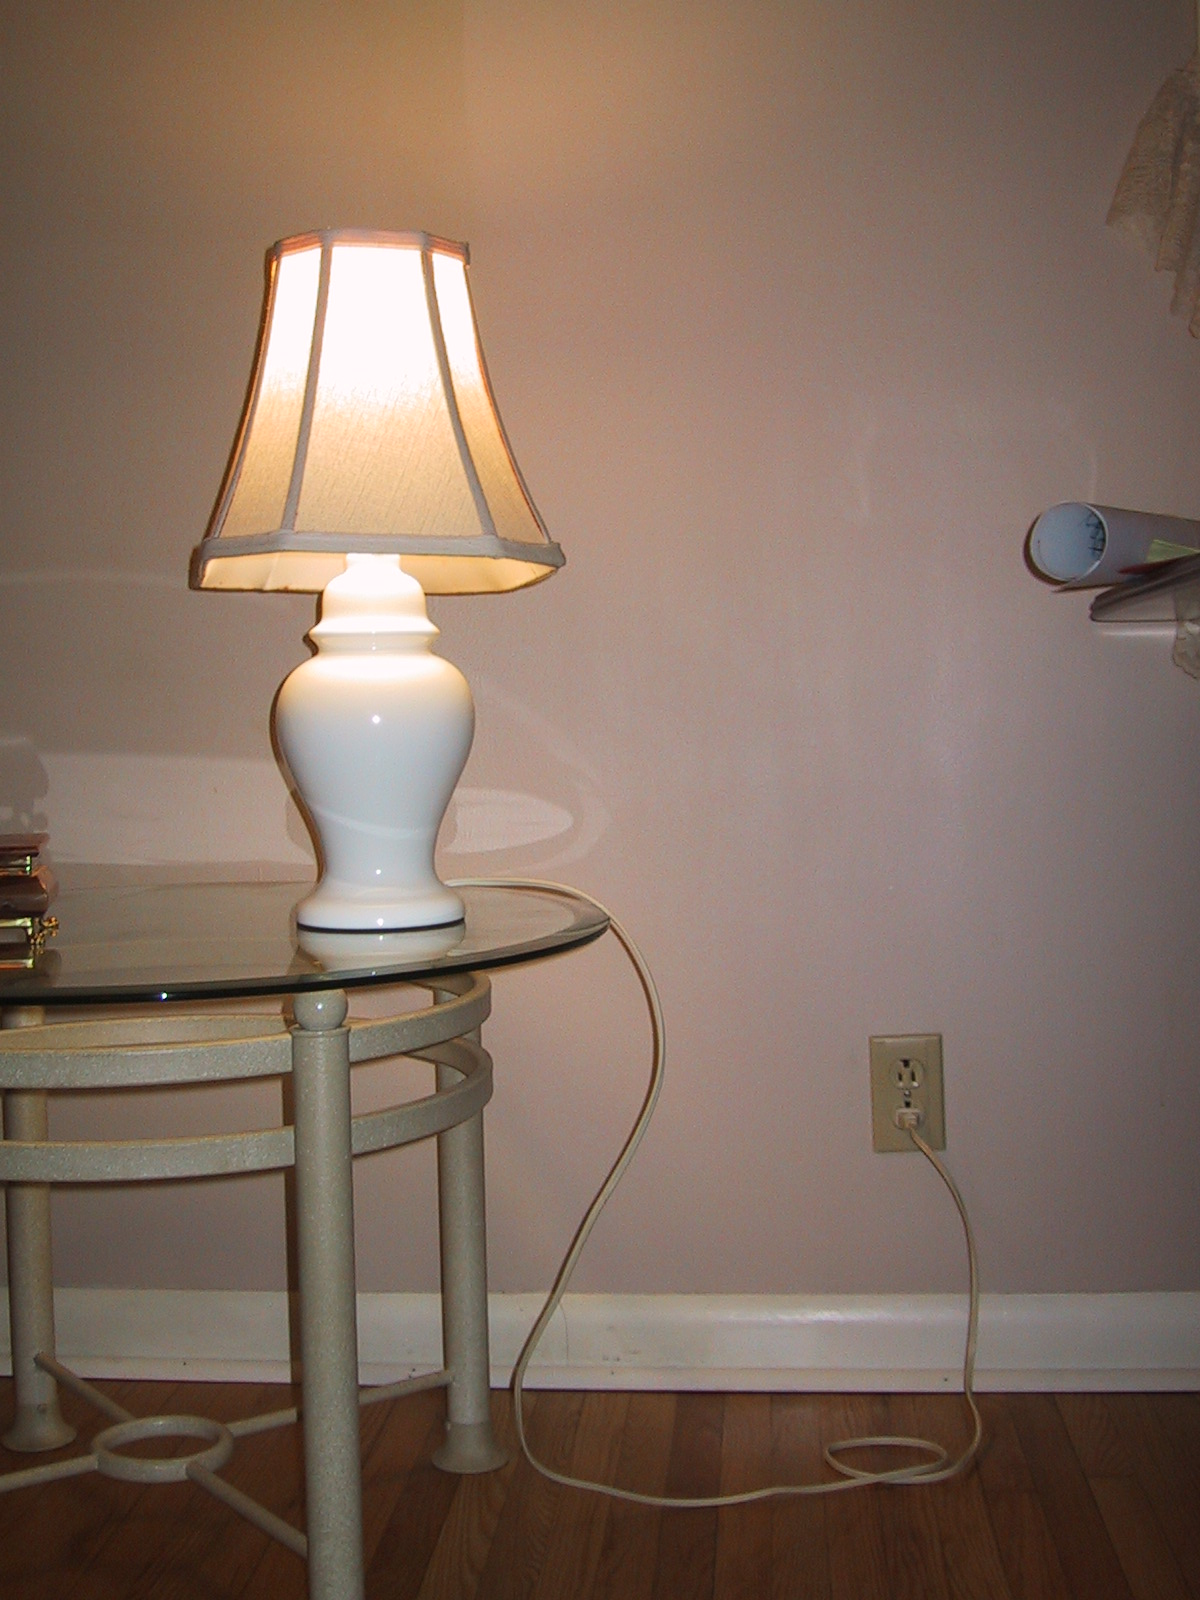 Wall Lamp With Electrical Outlet : Mains electricity - Wikipedia